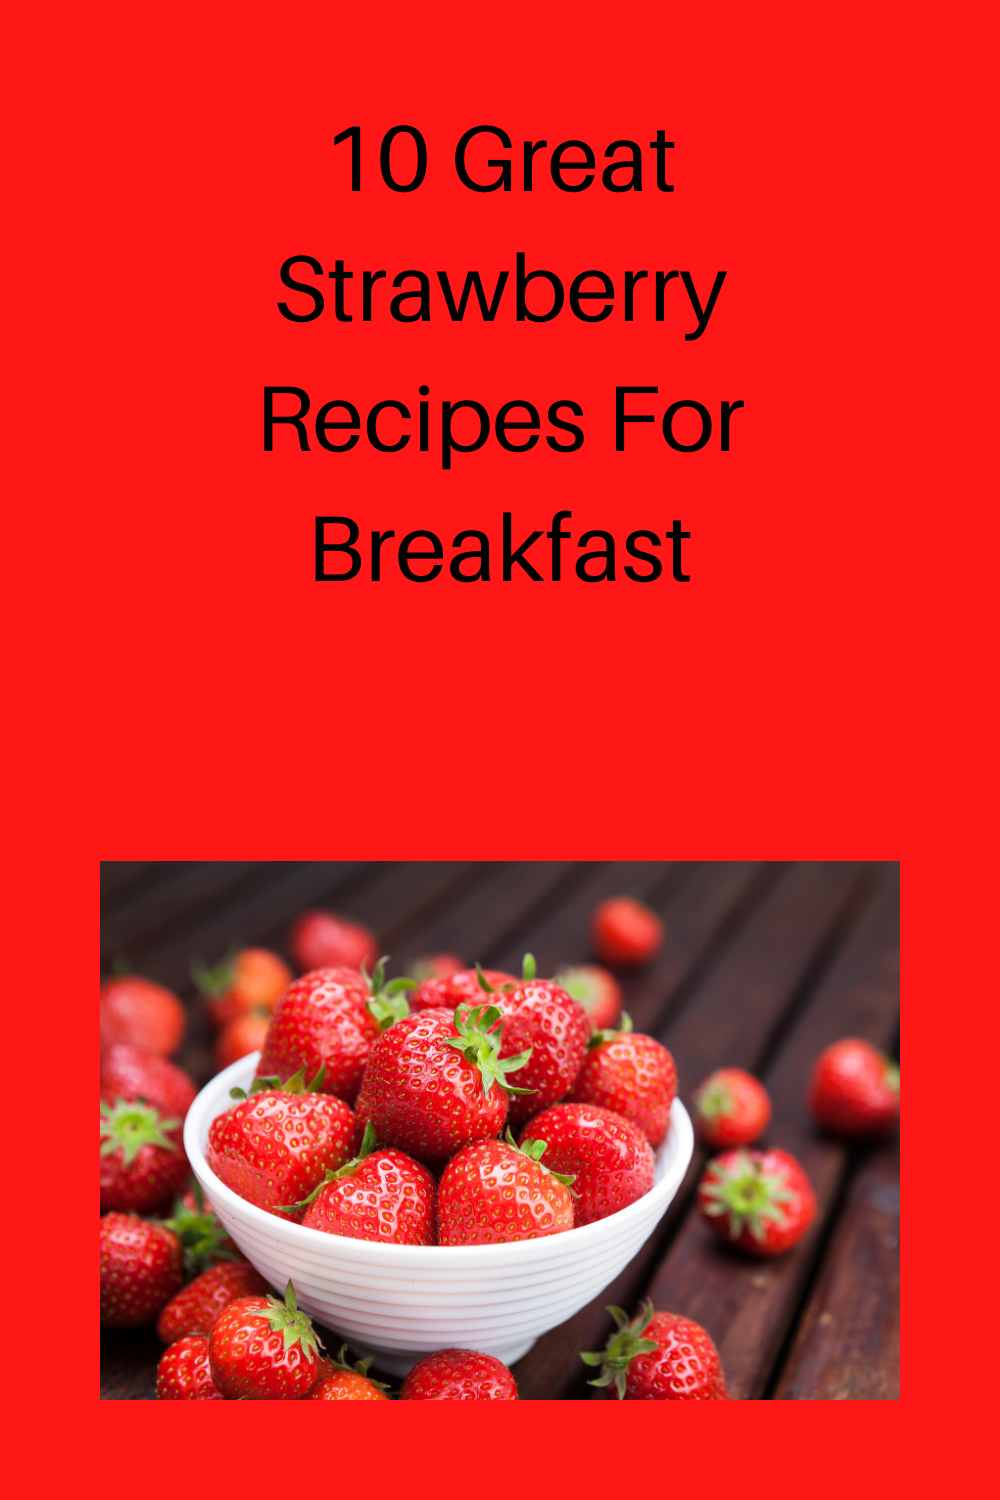 10 Great Strawberry Recipes For Breakfast